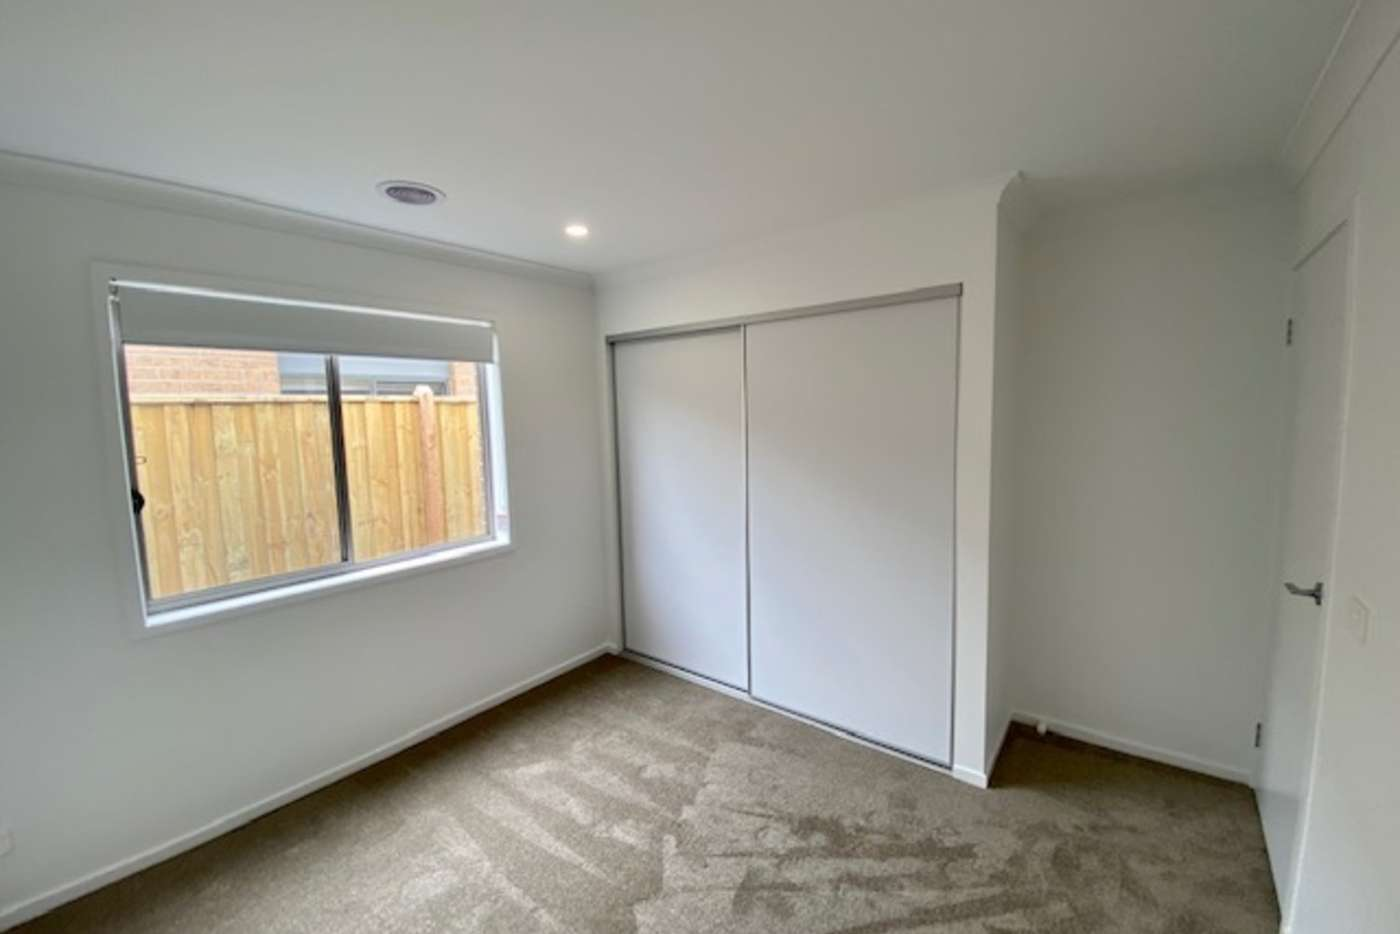 Sixth view of Homely house listing, 480 Casey Fields Boulevard, Cranbourne East VIC 3977